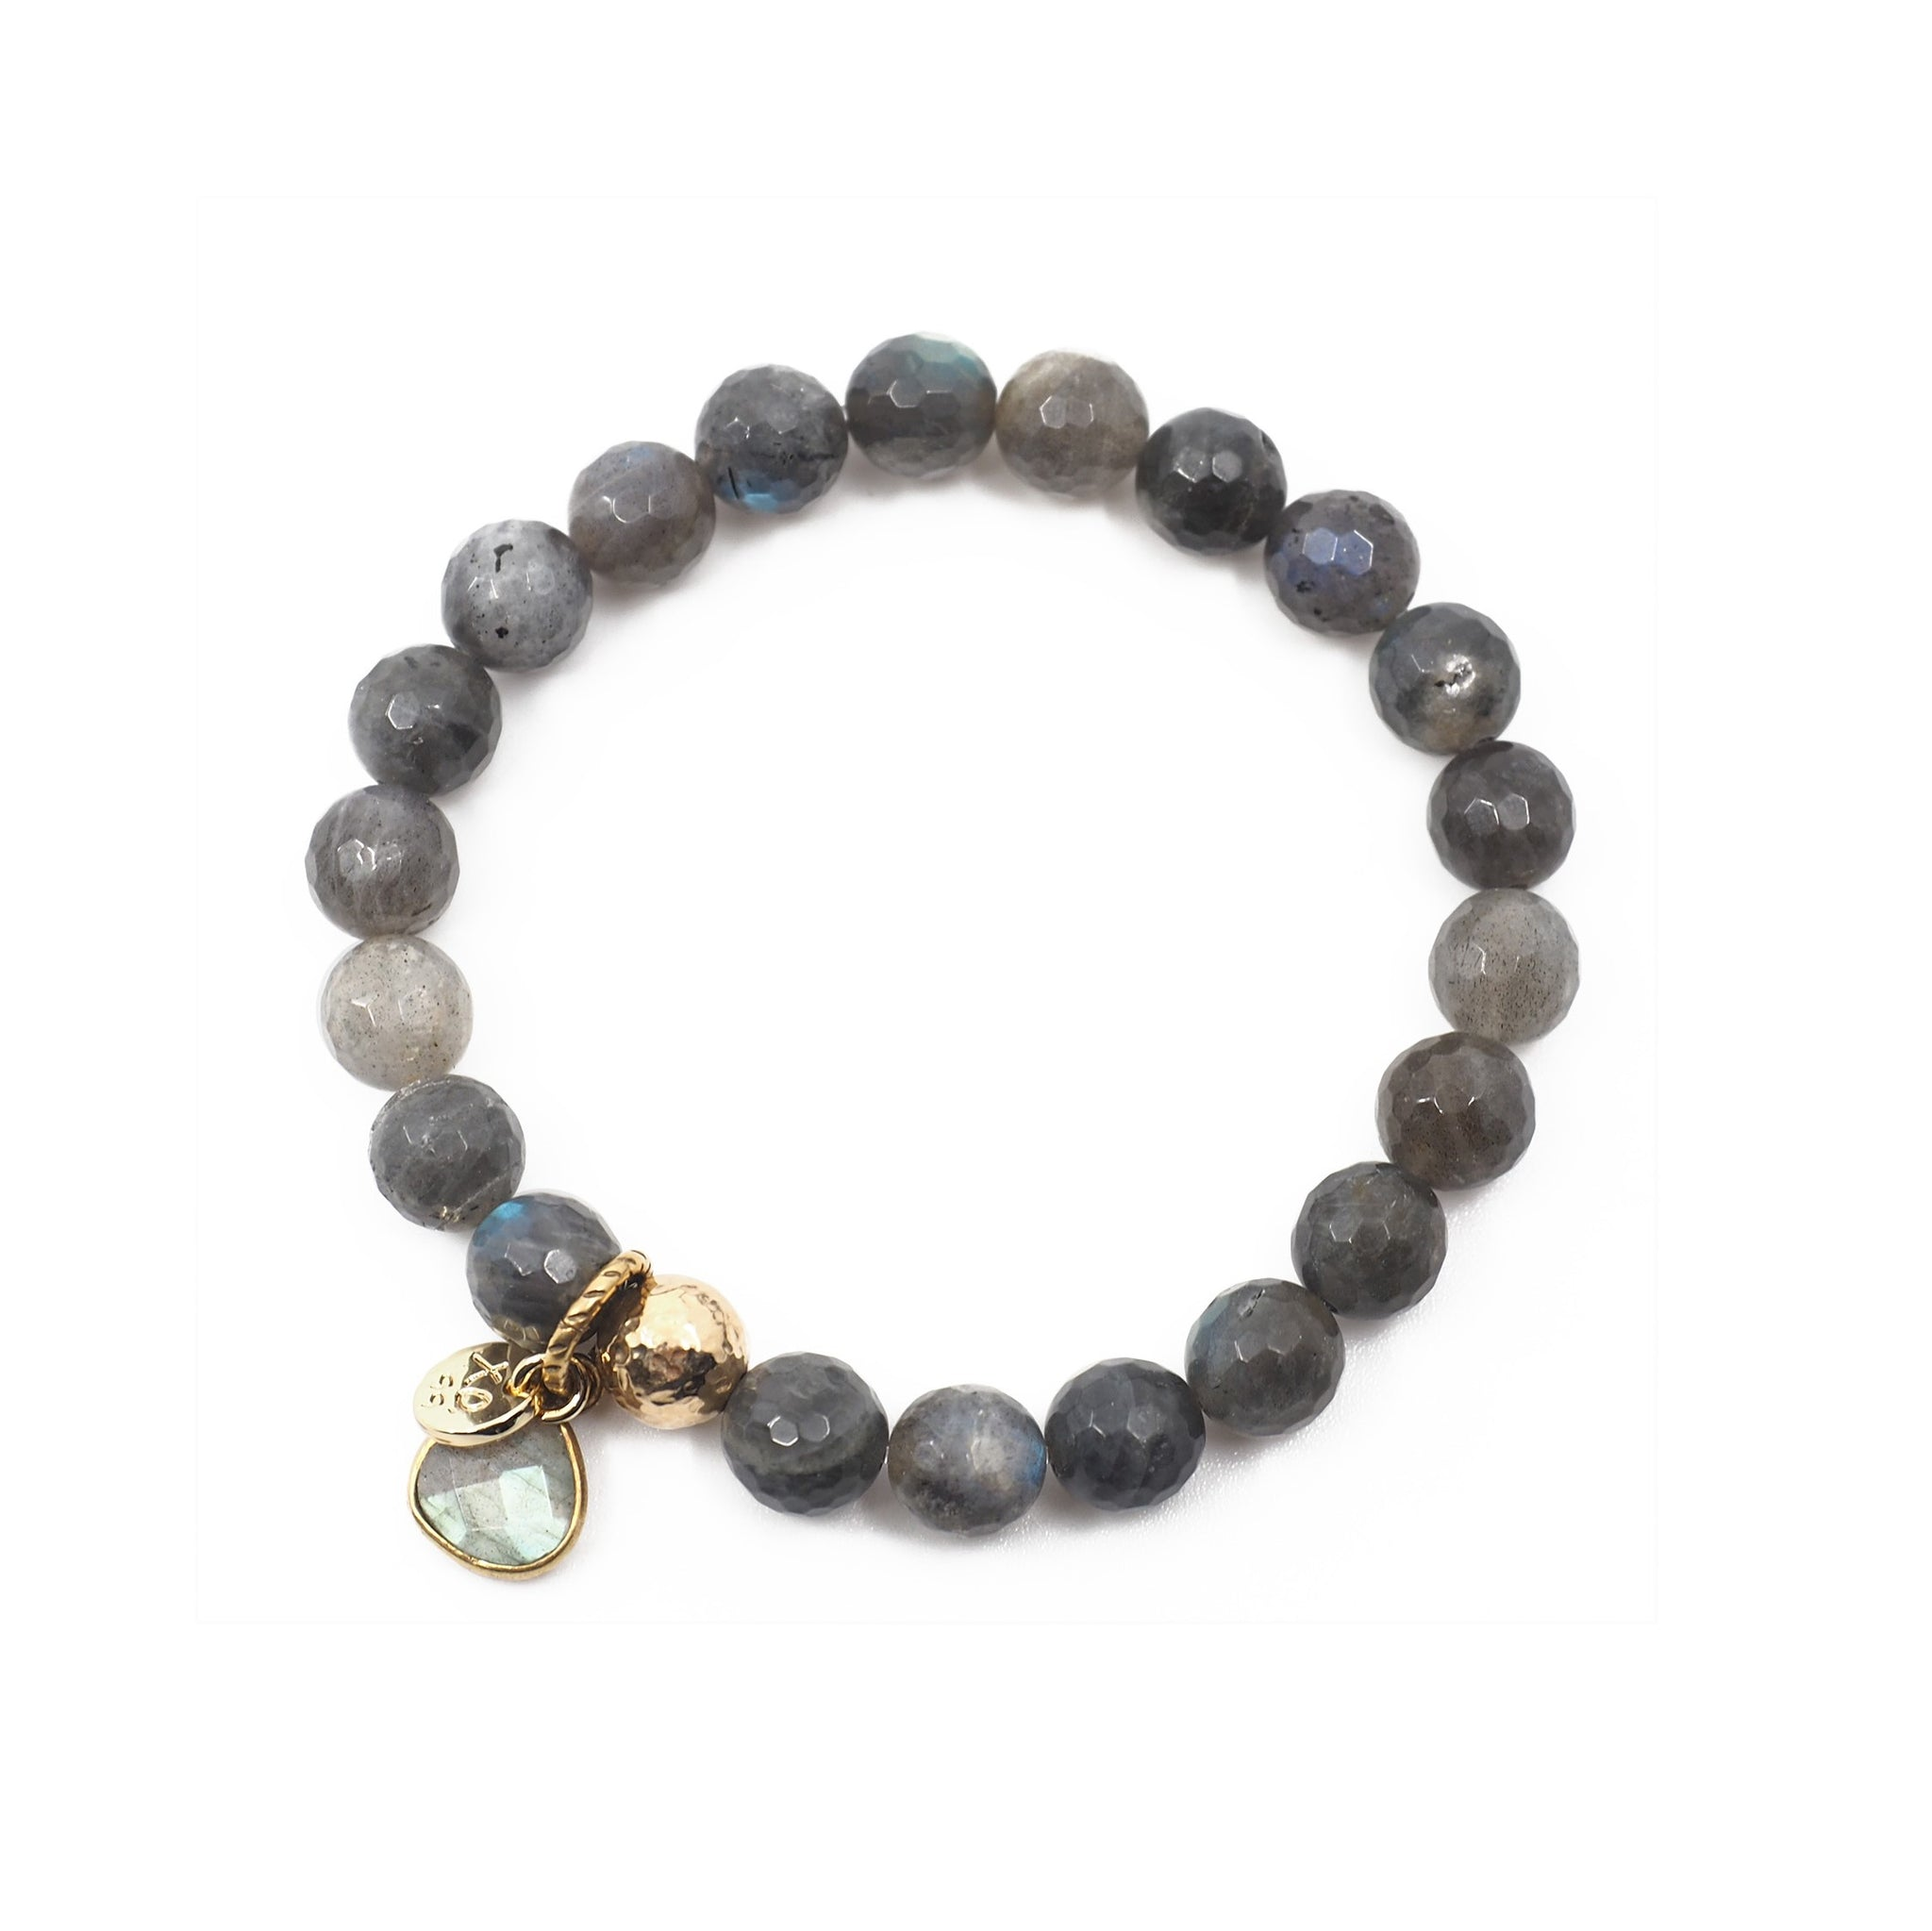 The Luna Charm Bracelet in Labradorite